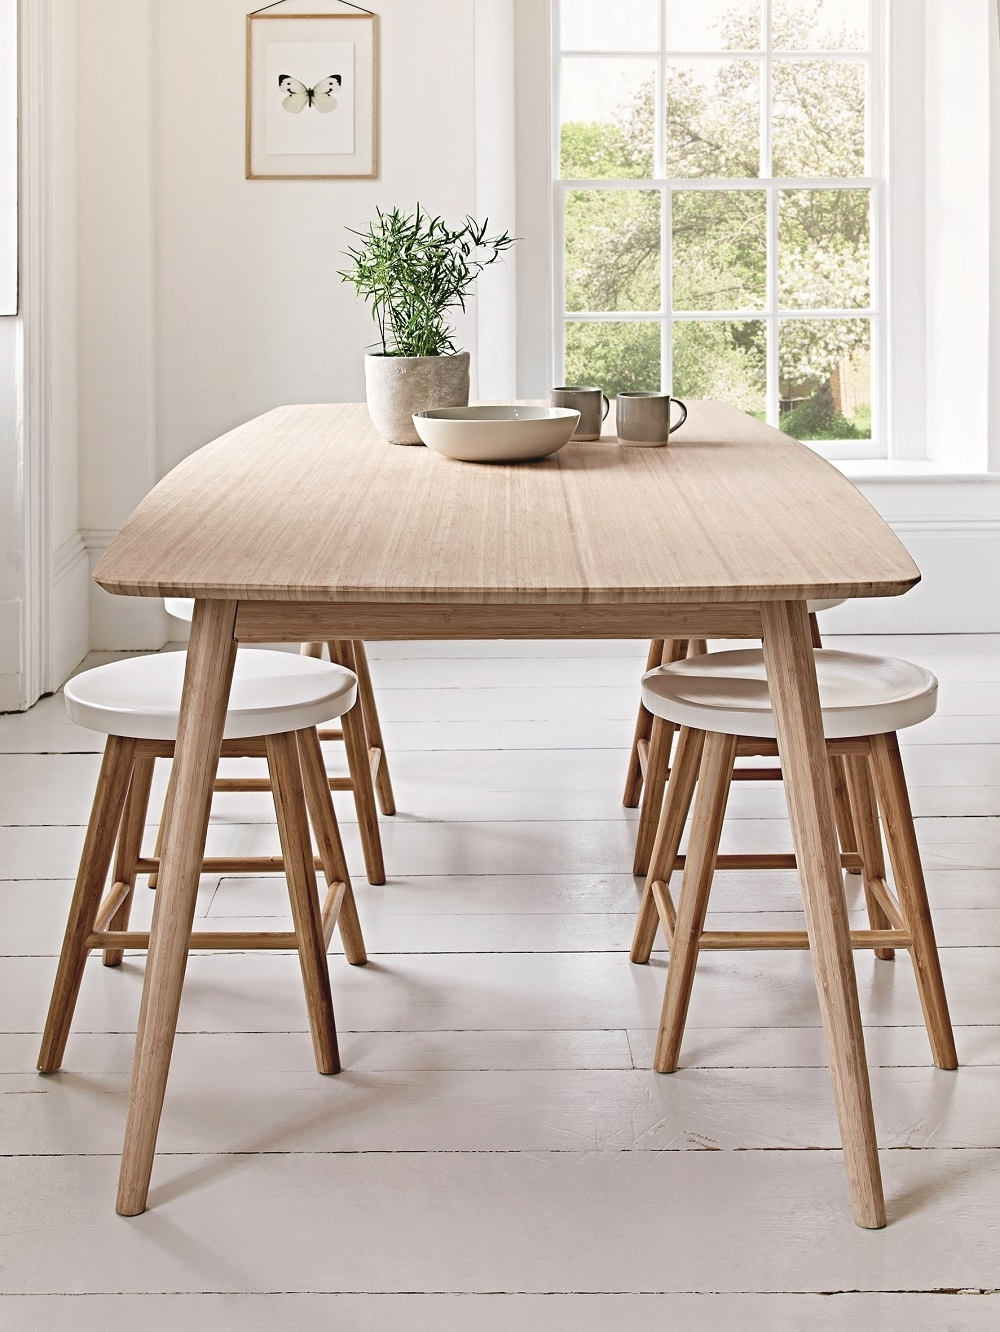 Scandinavian Dining Tables And Chairs Inside Well Known Scandinavian Style Dining Room Furniture (View 4 of 25)